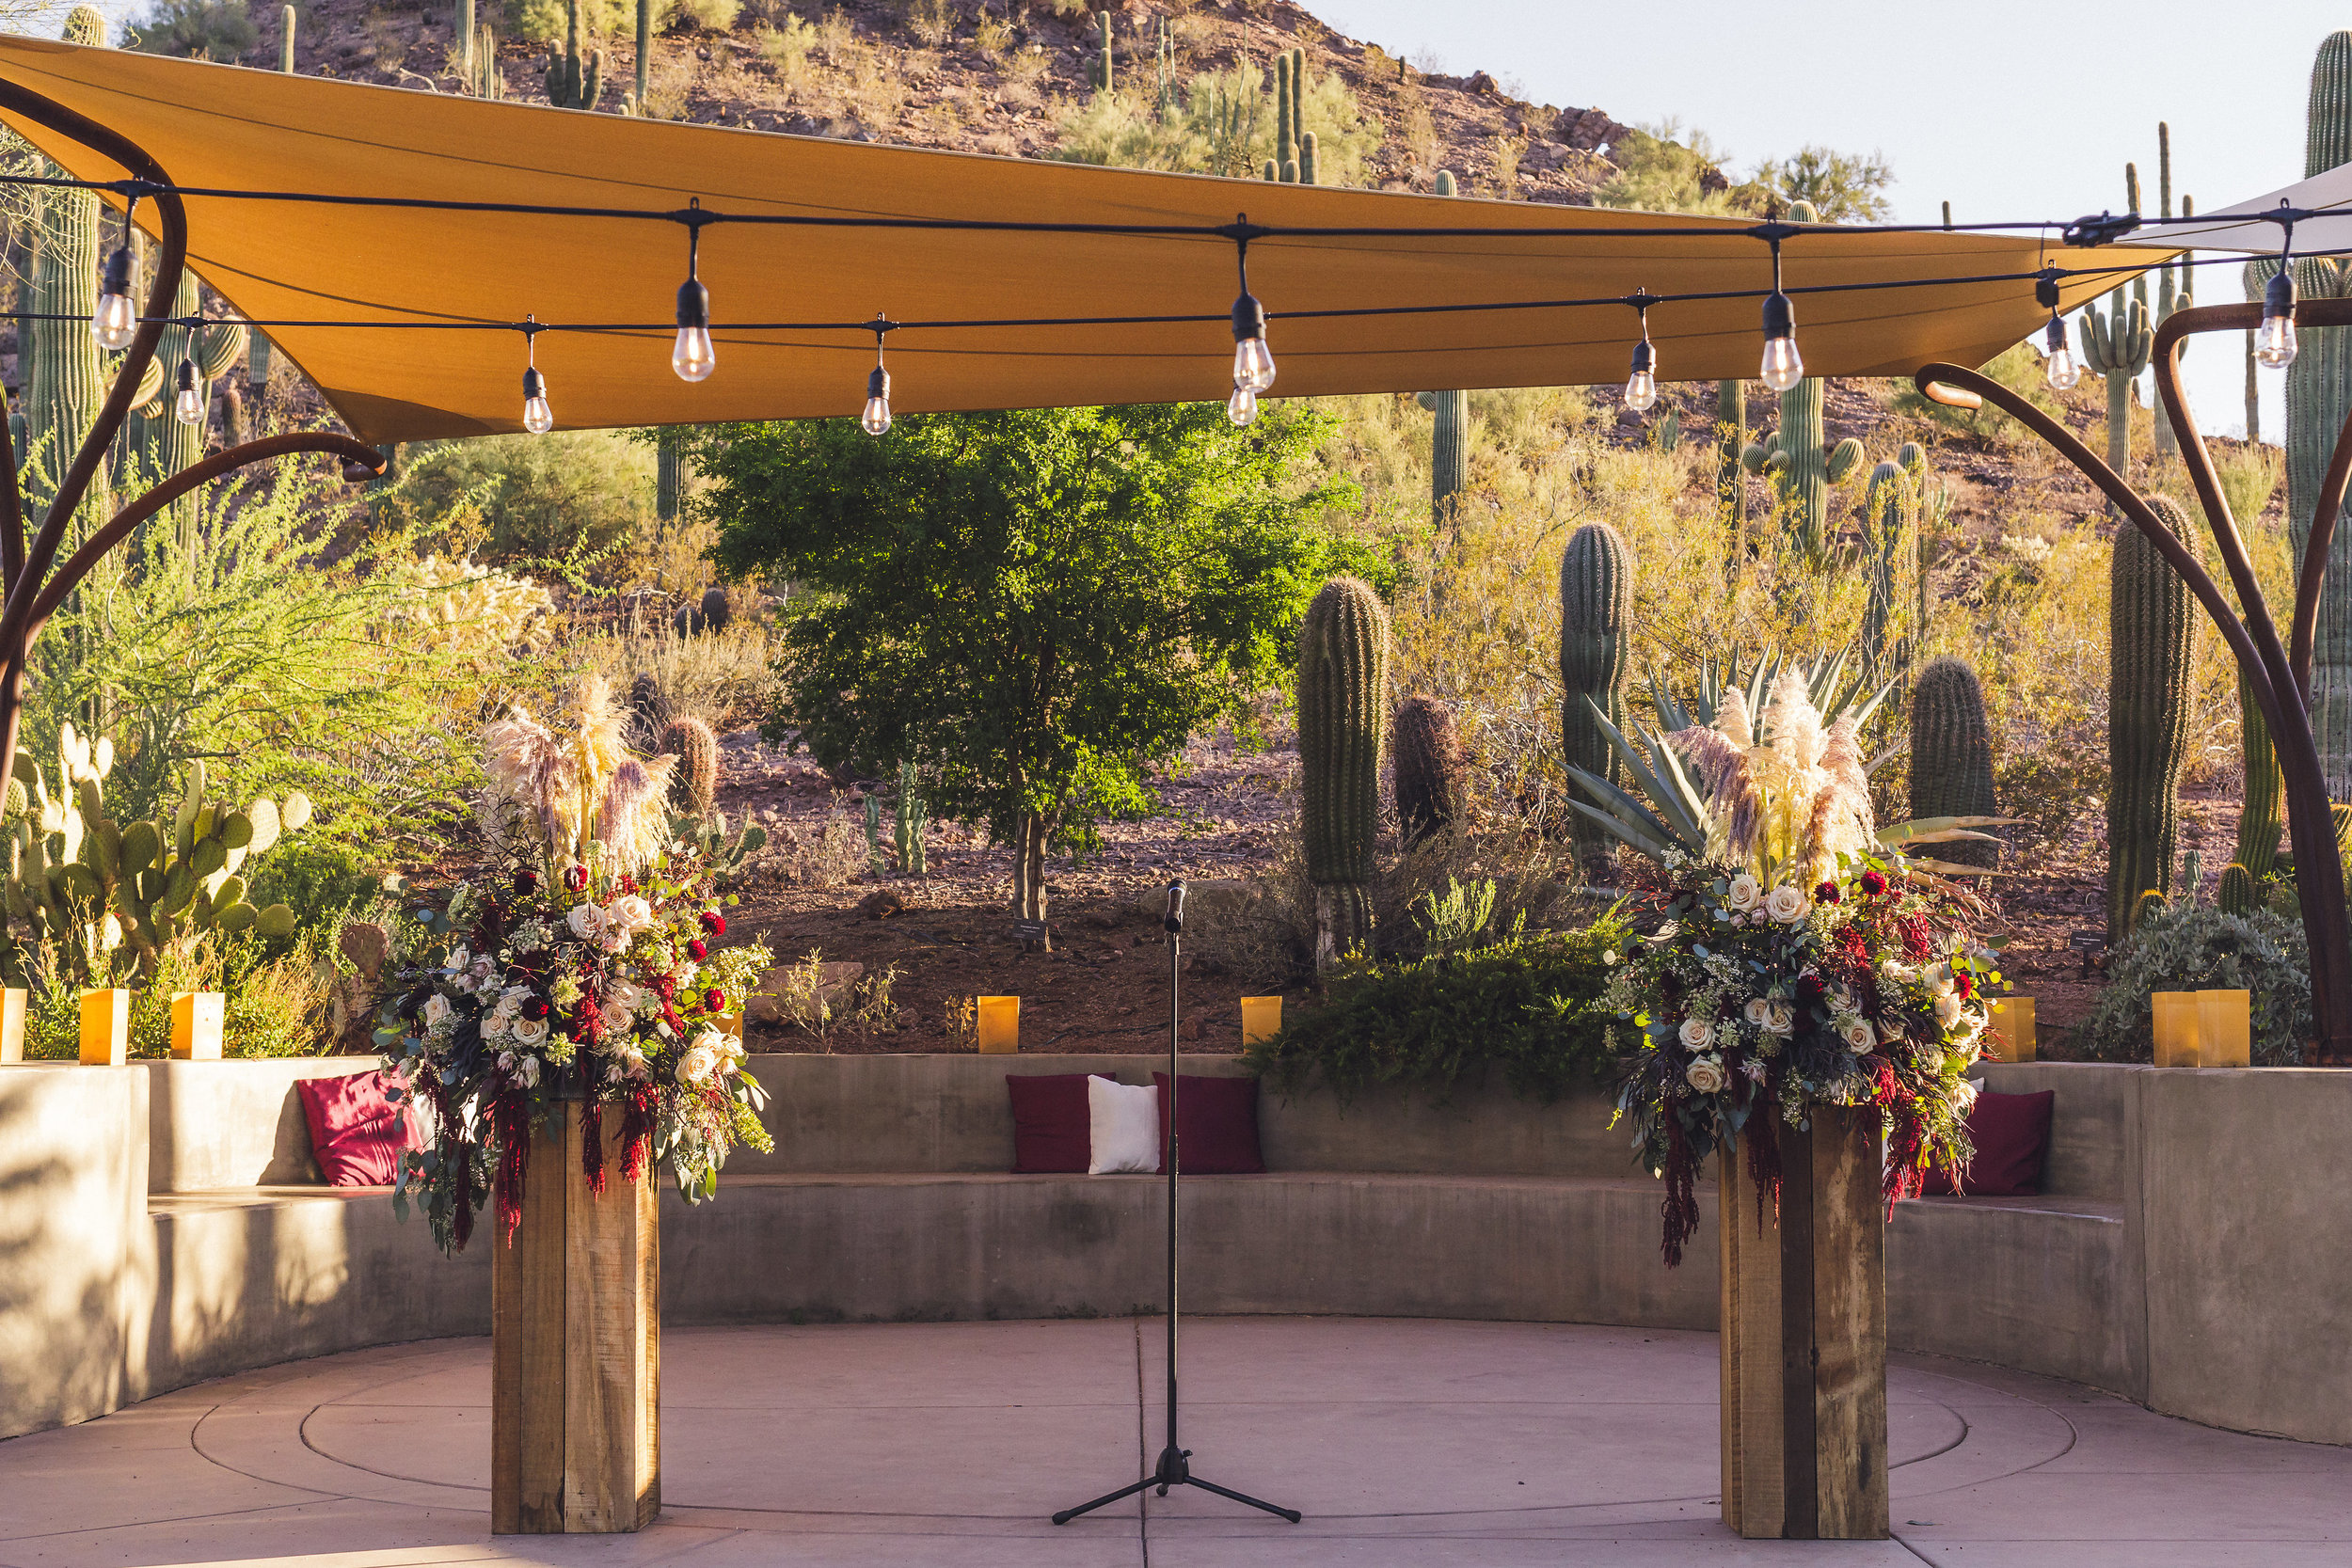 aaron-kes-photography-phoenix-desert-botanical-garden-wedding-jd-18.jpg